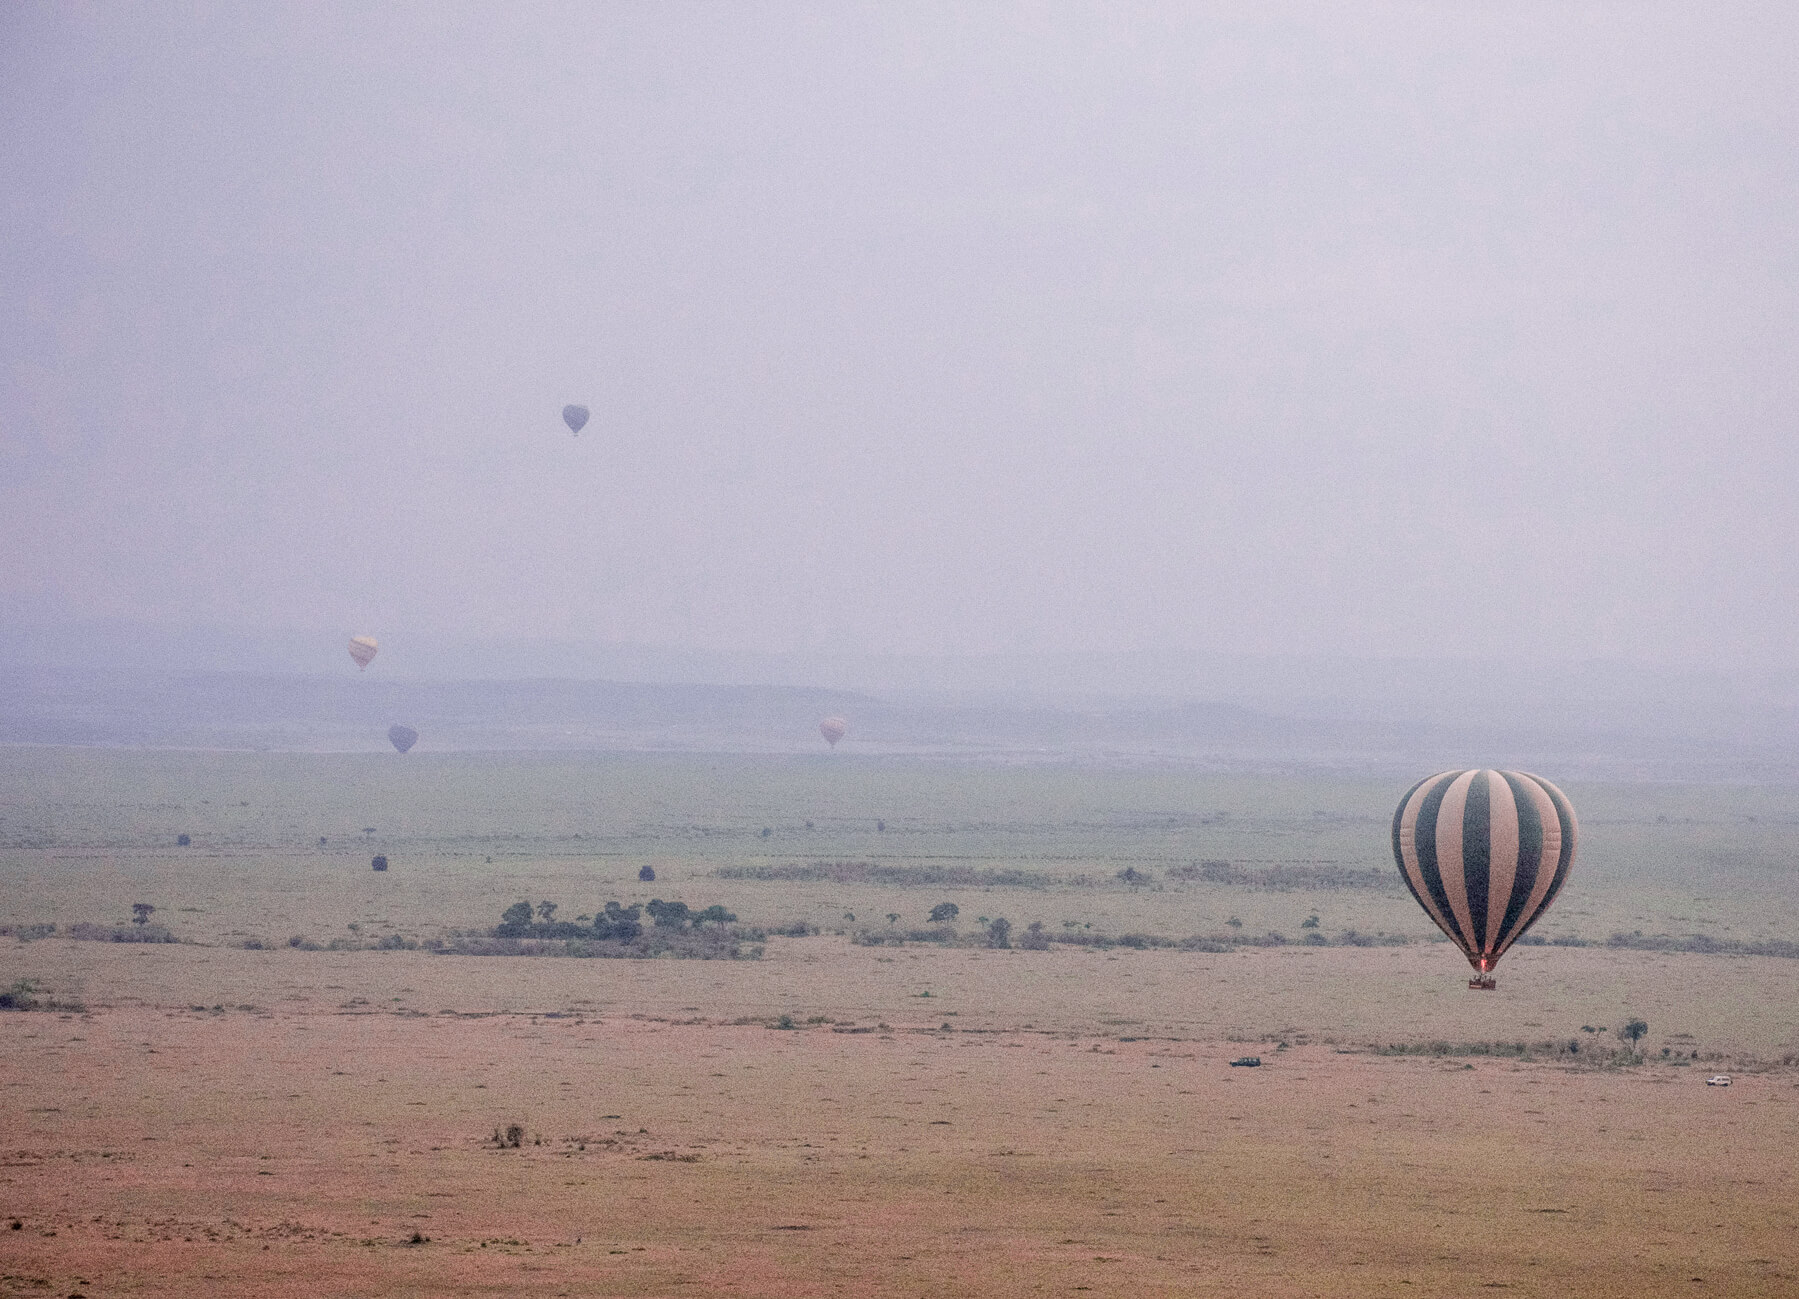 A green and yellow hot air balloon flying low, with 4 other balloons flying far in the distance